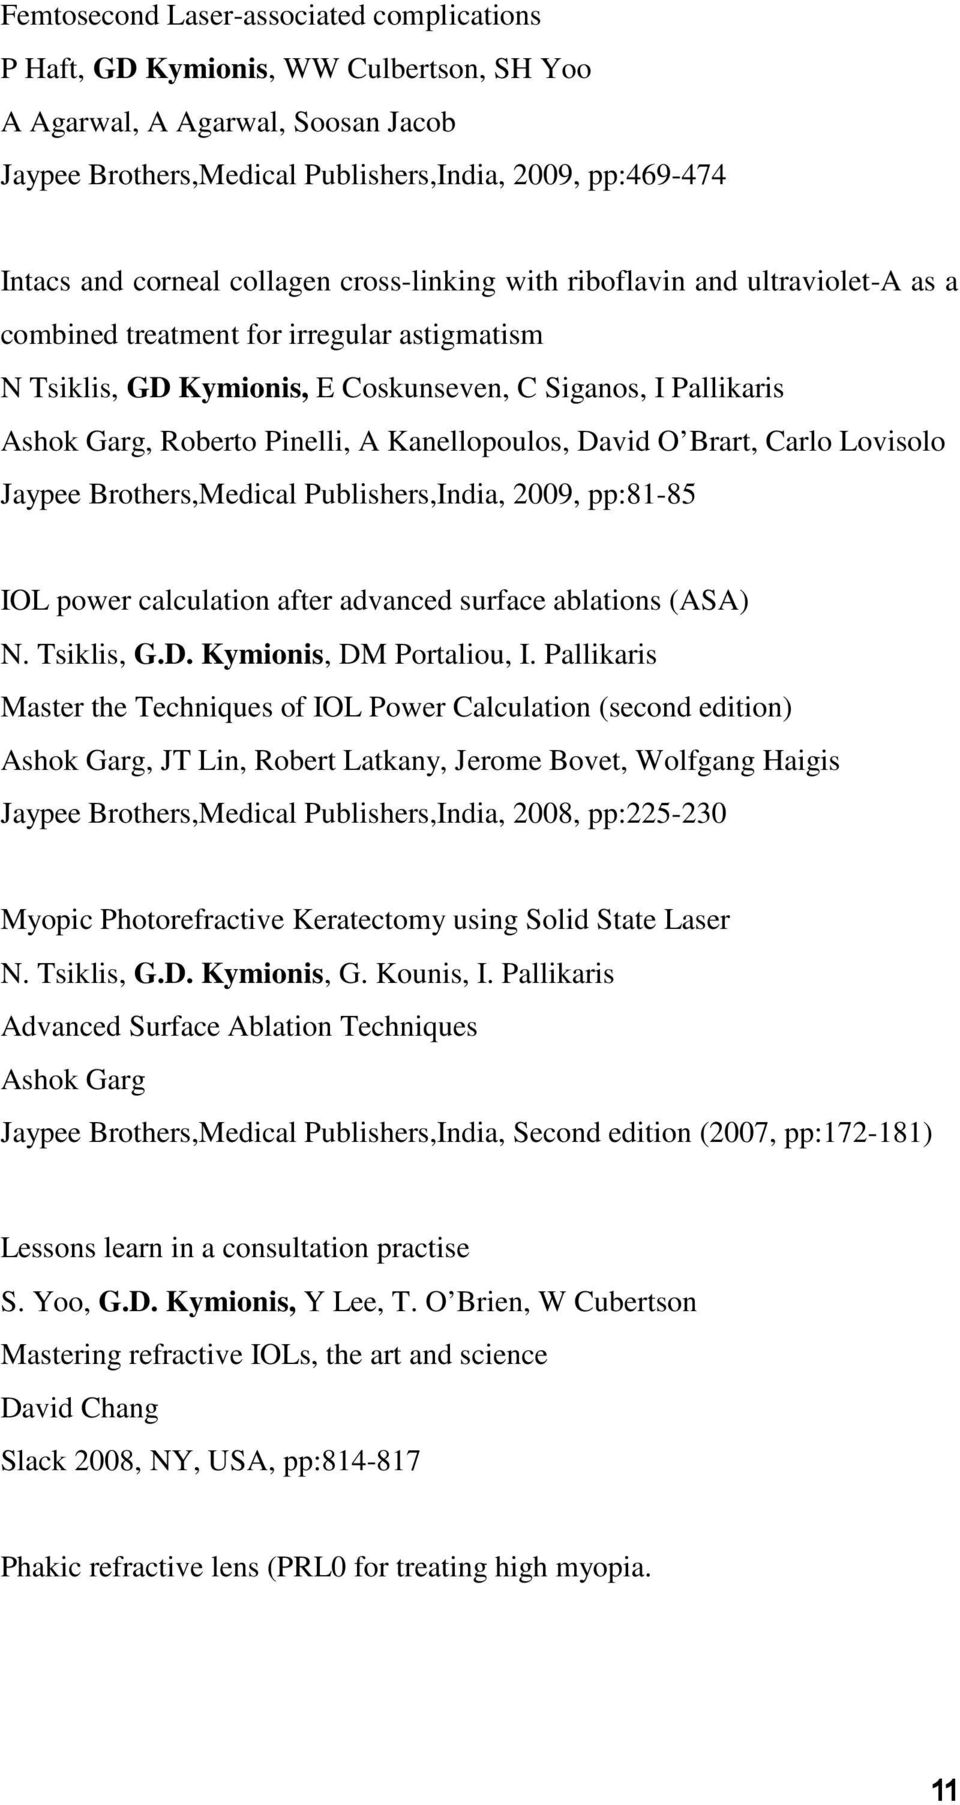 A Kanellopoulos, David O Brart, Carlo Lovisolo Jaypee Brothers,Medical Publishers,India, 2009, pp:81-85 IOL power calculation after advanced surface ablations (ASA) N. Tsiklis, G.D. Kymionis, DM Portaliou, I.